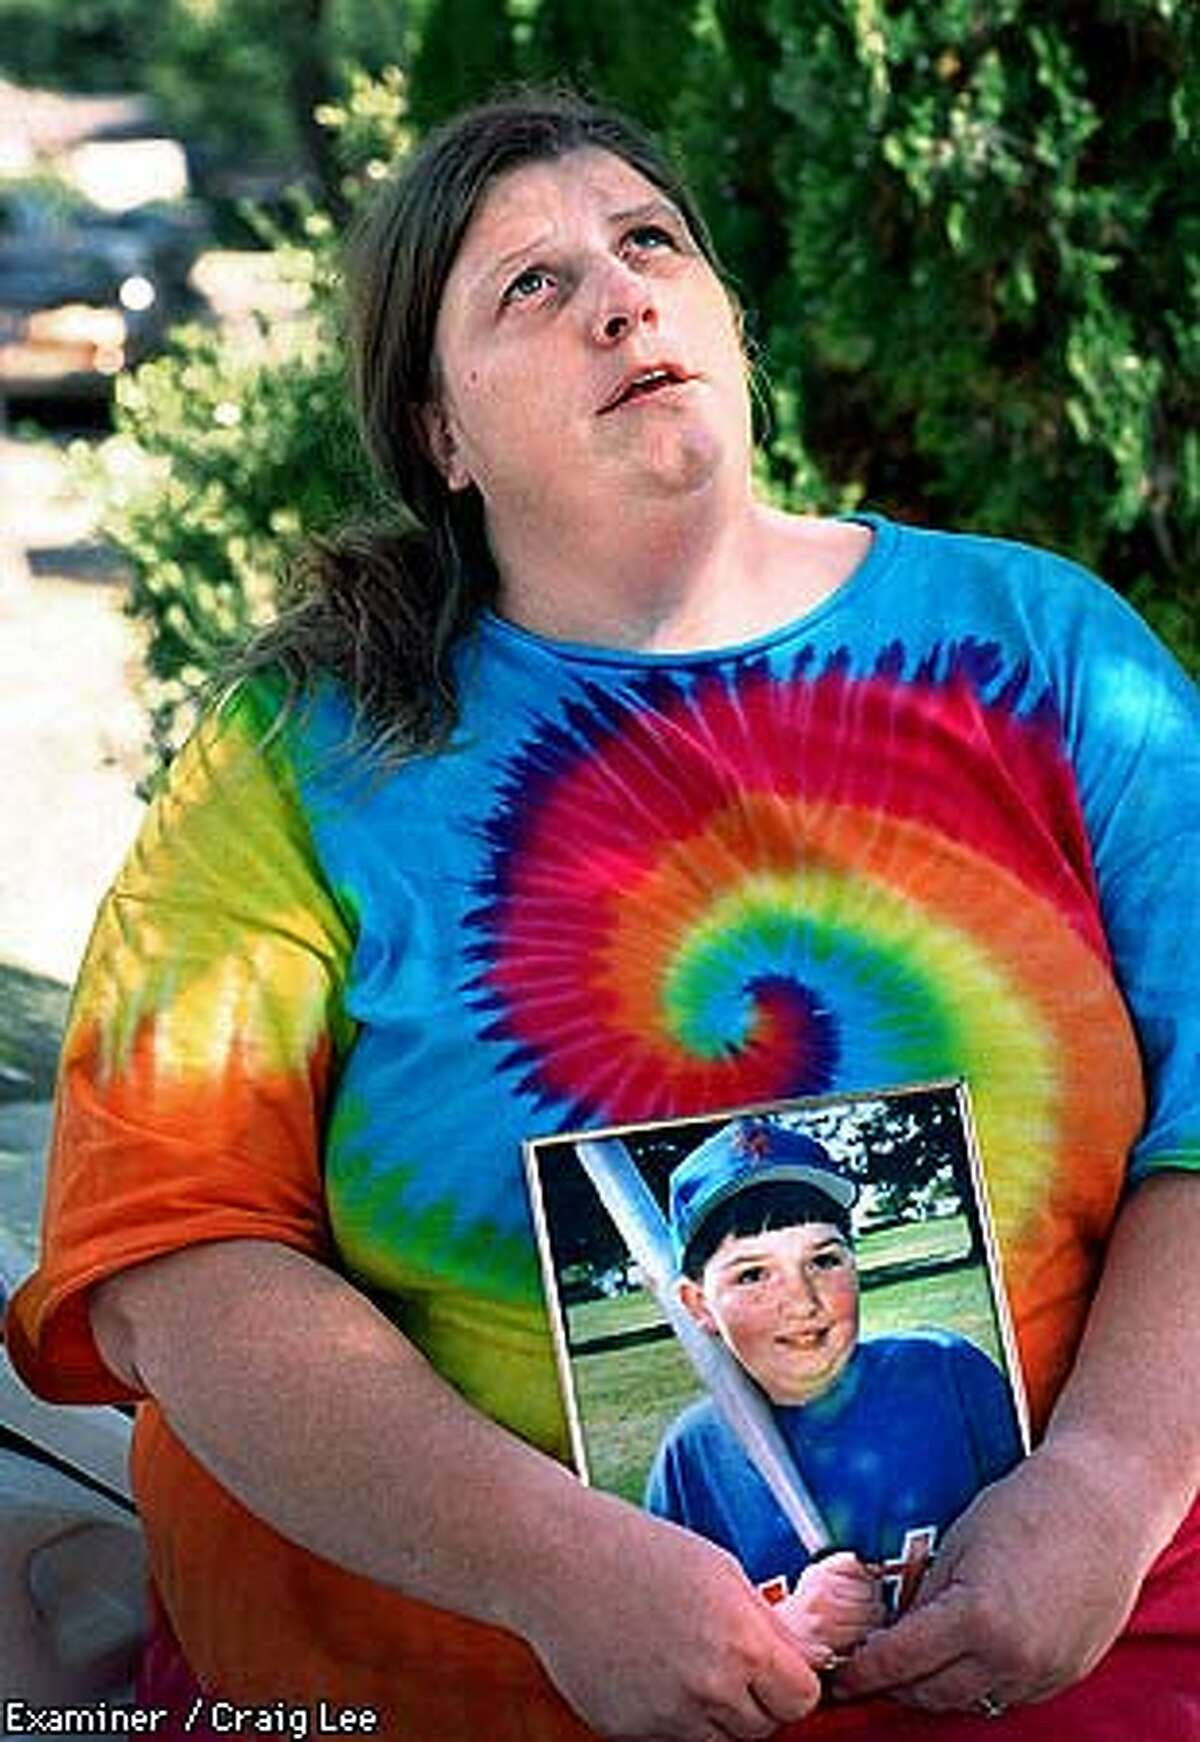 Tami Smurphat, the victim's mother. Examiner Photo by Craig Lee